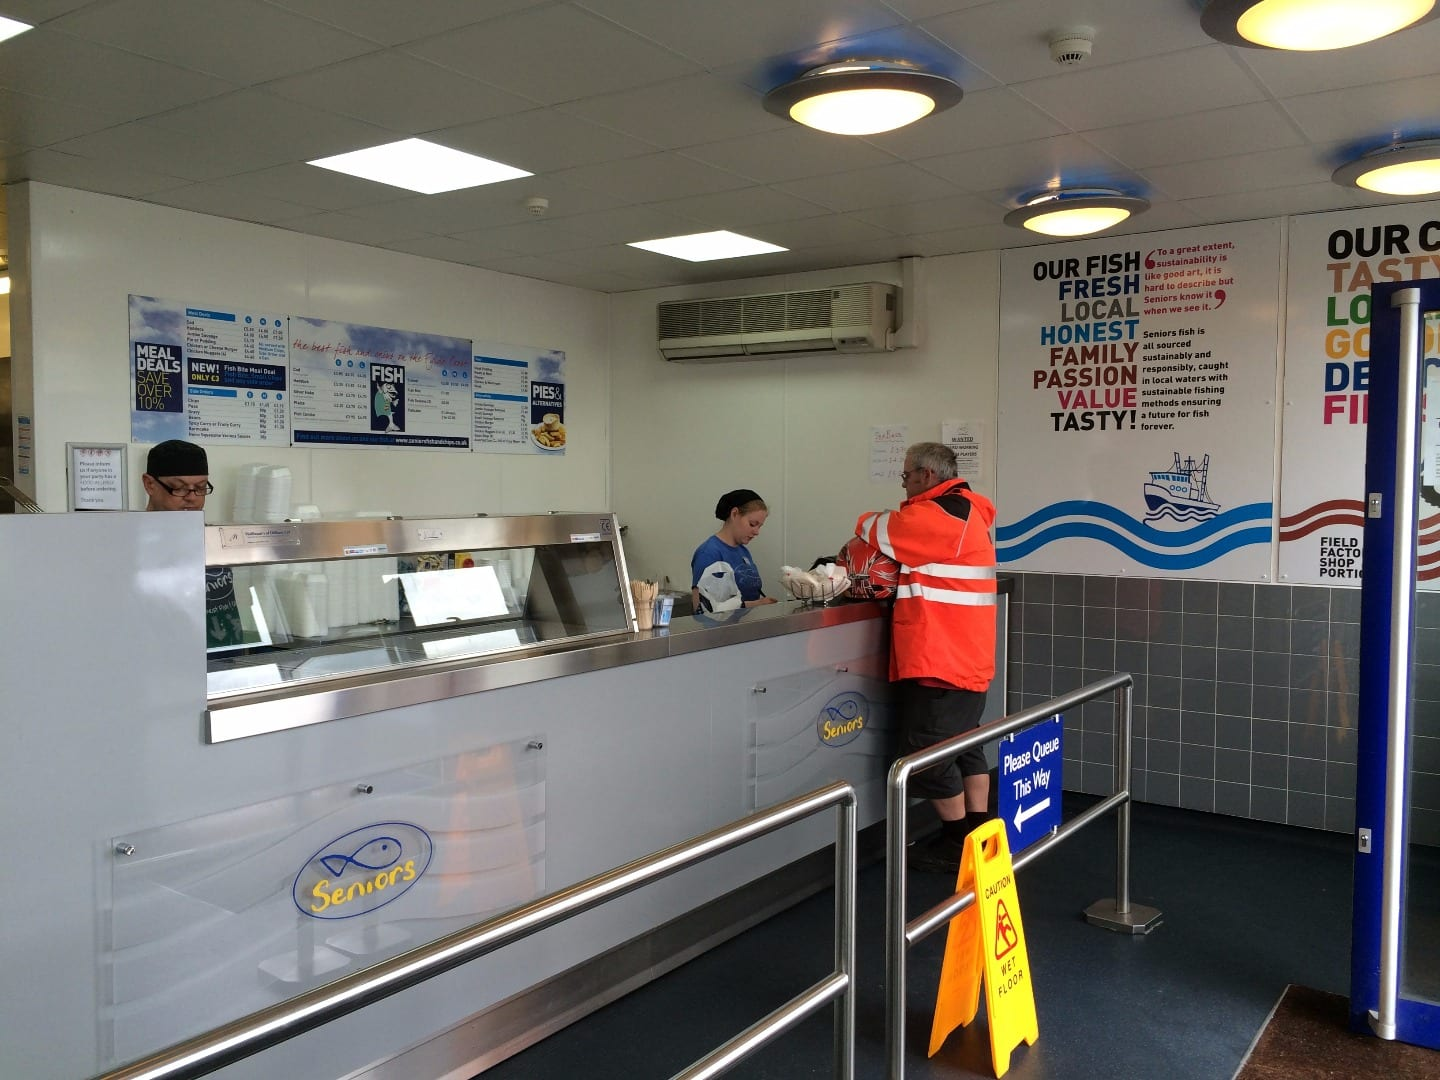 Fish and chip takeaway at Seniors Bispham